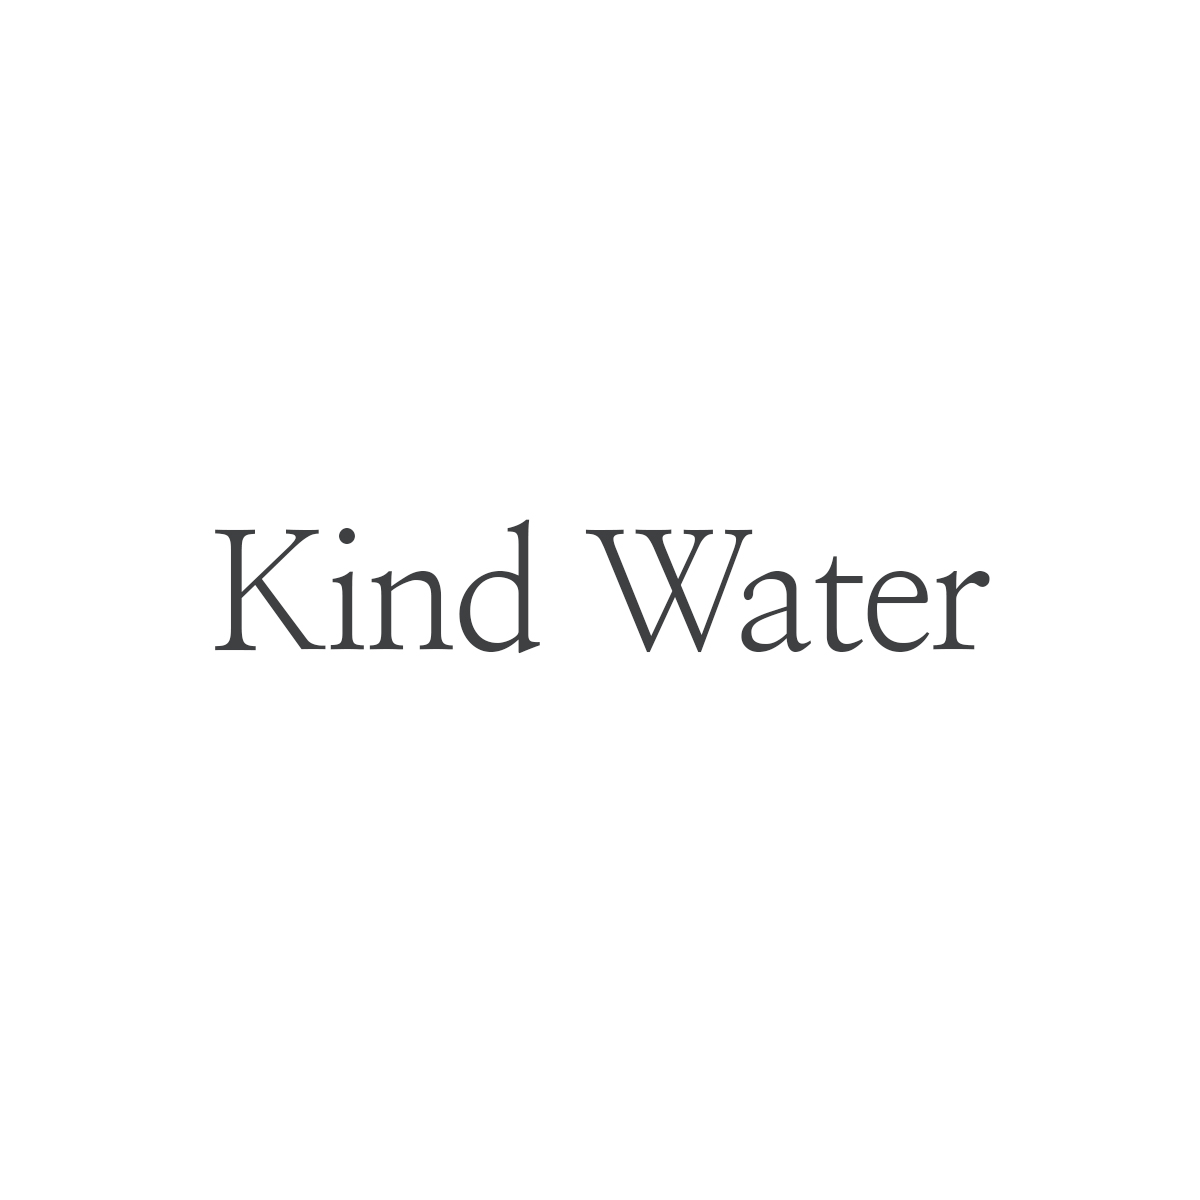 Kind Water